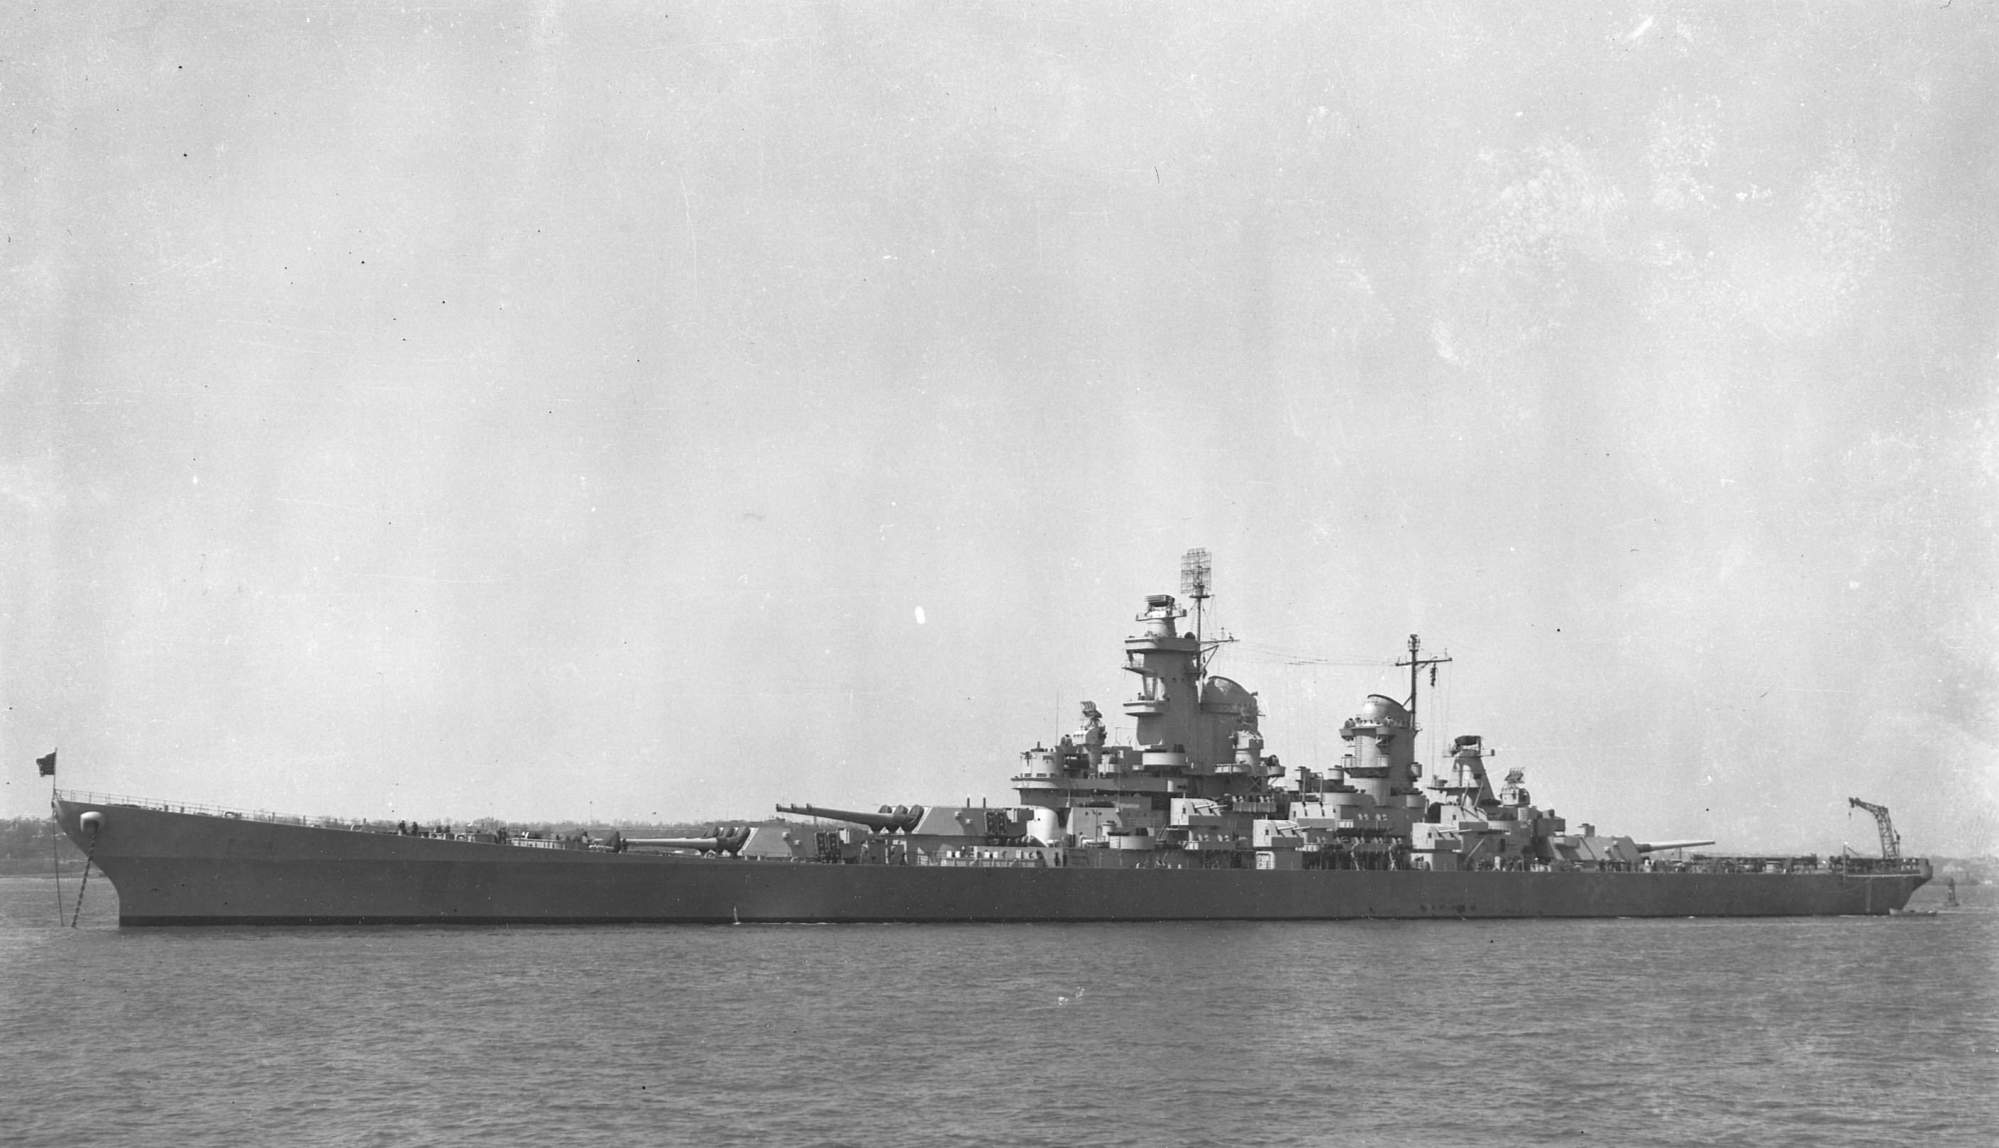 hight resolution of uss iowa bb 61 during her shakedown period on april 4th 1943